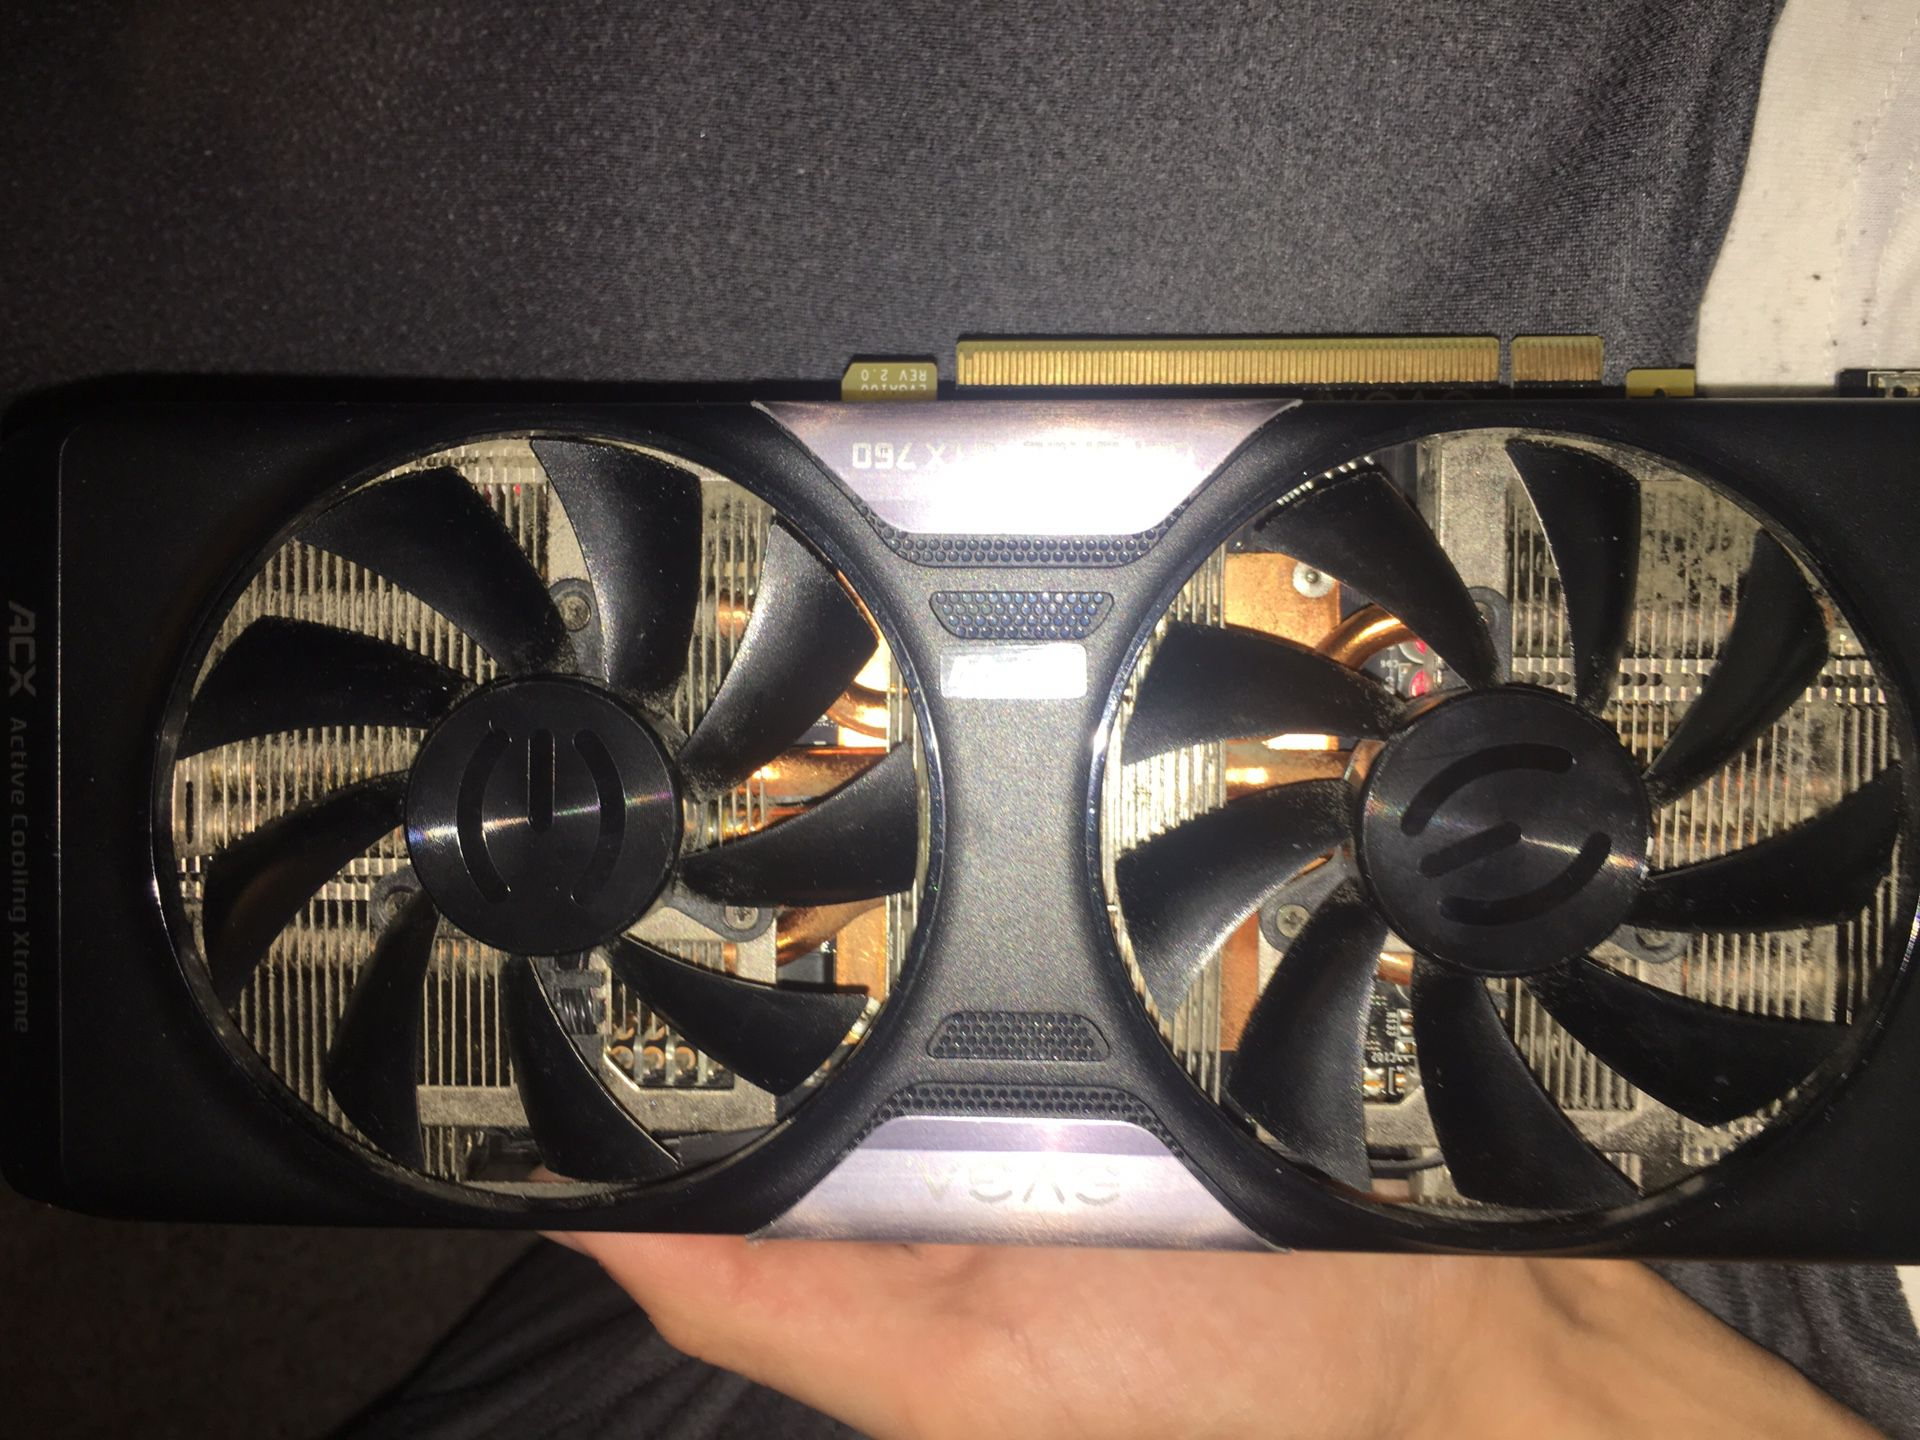 NOT FUNCTIONING! Gtx750 graphics card